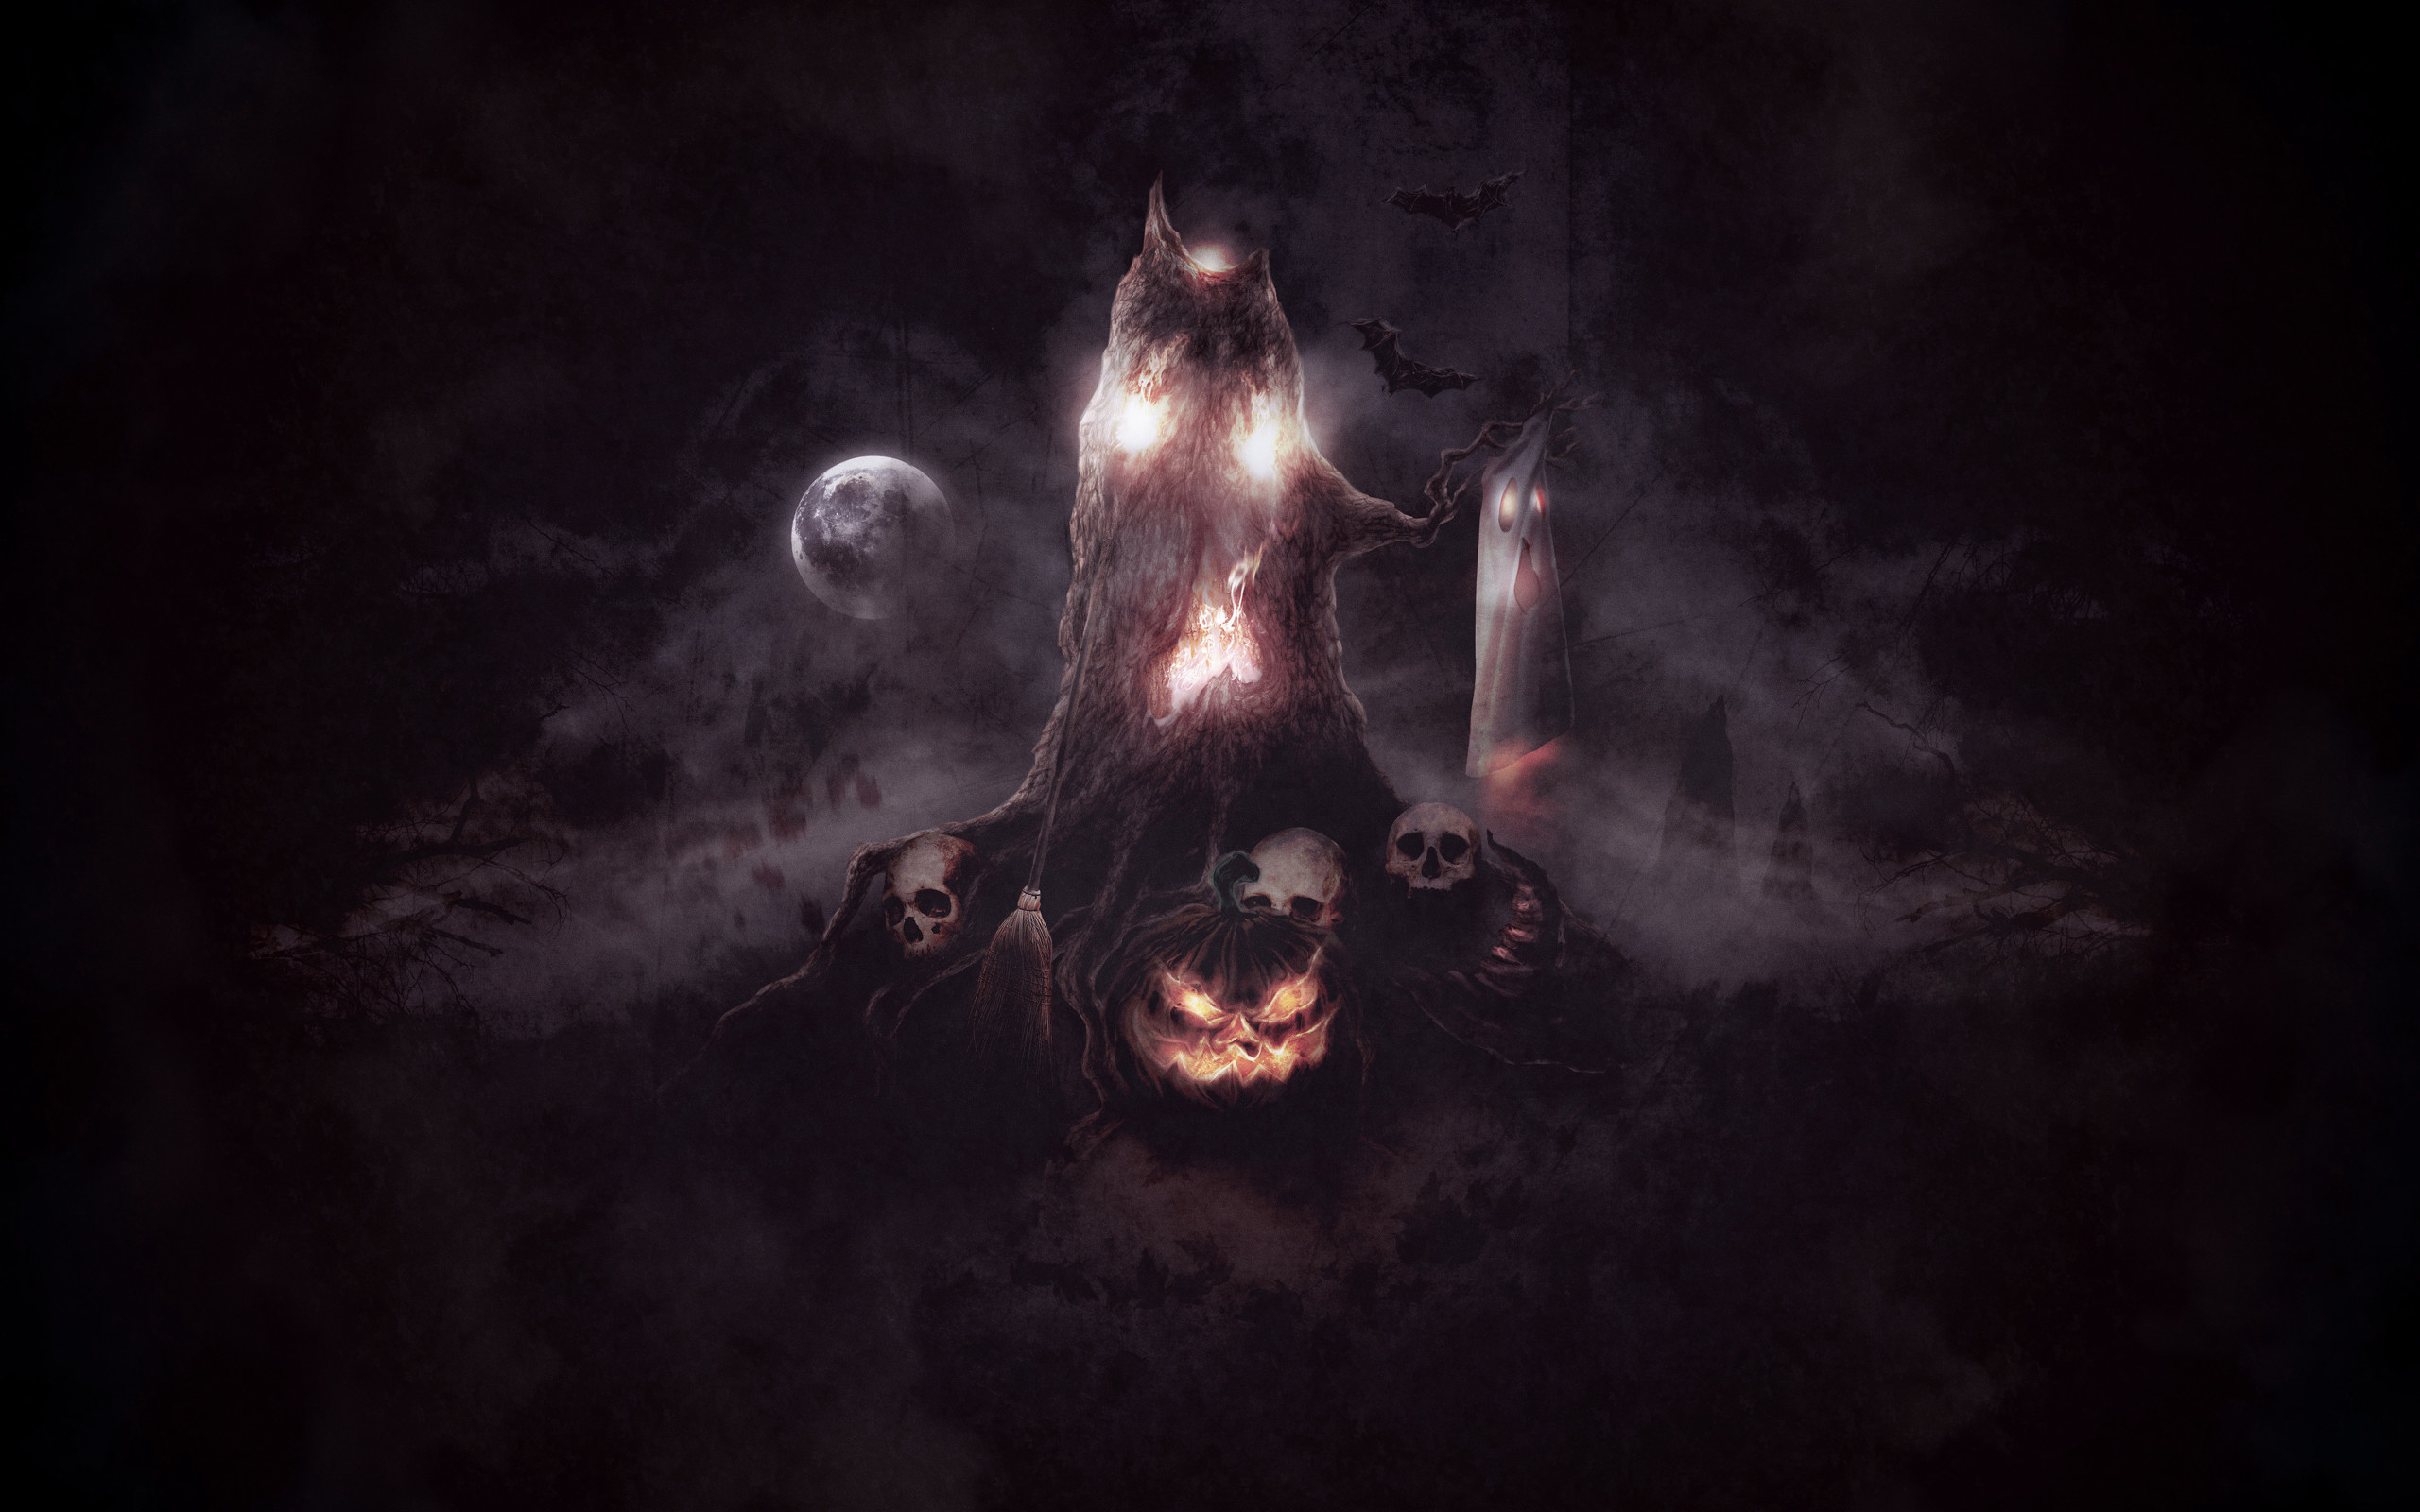 Awesome Scary Animated Halloween Wallpapers in High Quality, Yiannis  Commings